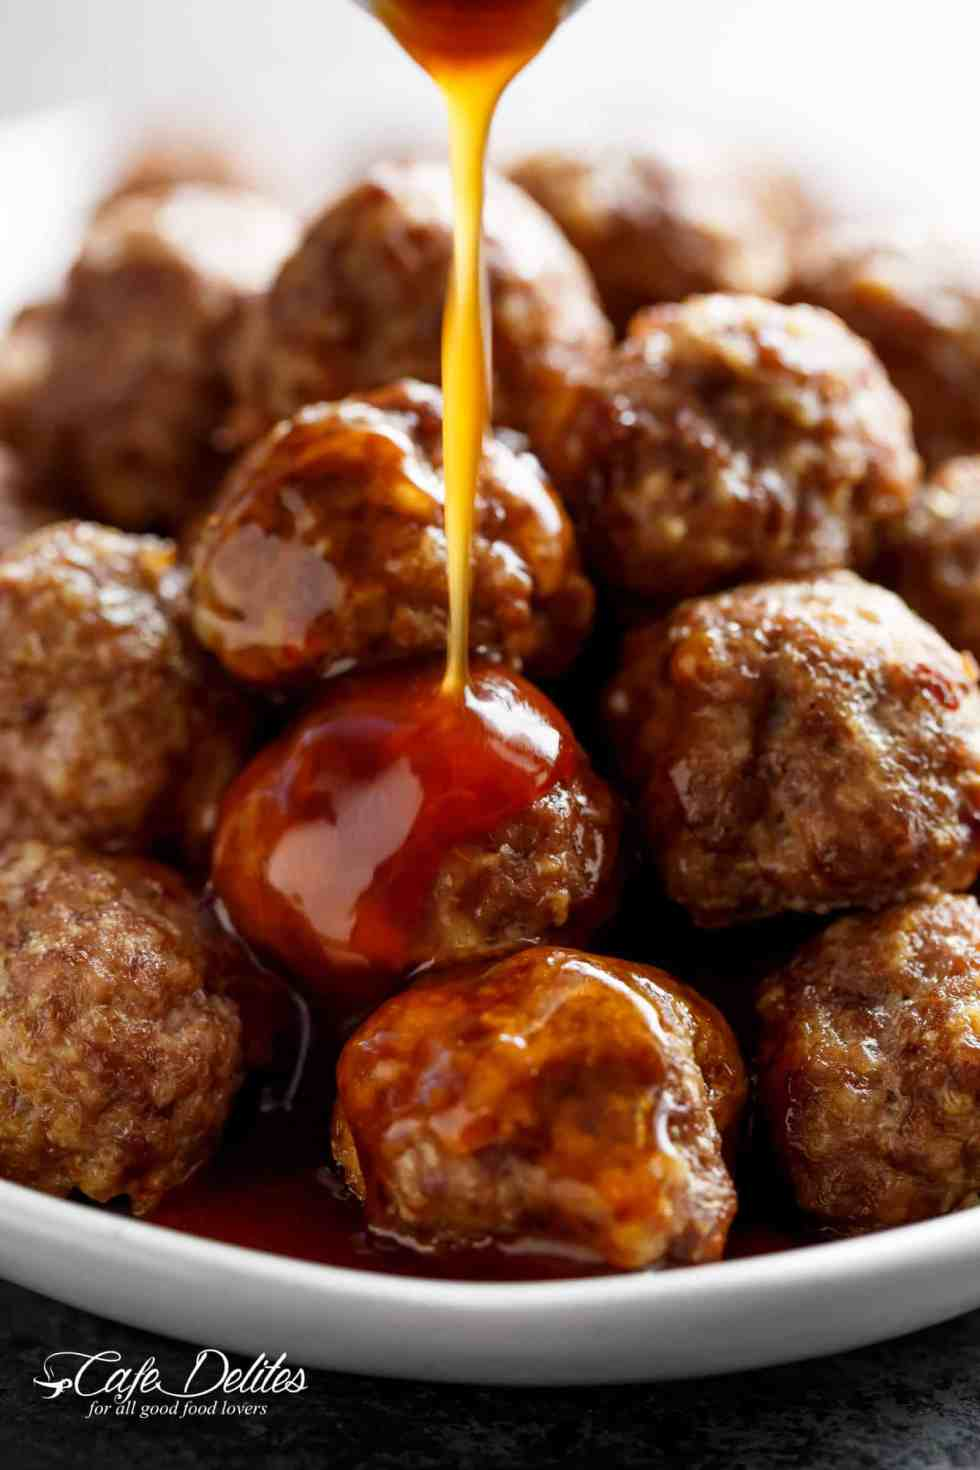 Teriyaki Beef Meatballs are so versatile, these Teriyaki Beef Meatballs can be served as a main meal with steamed rice and veggies OR as an appetizer! | cafedelites.com